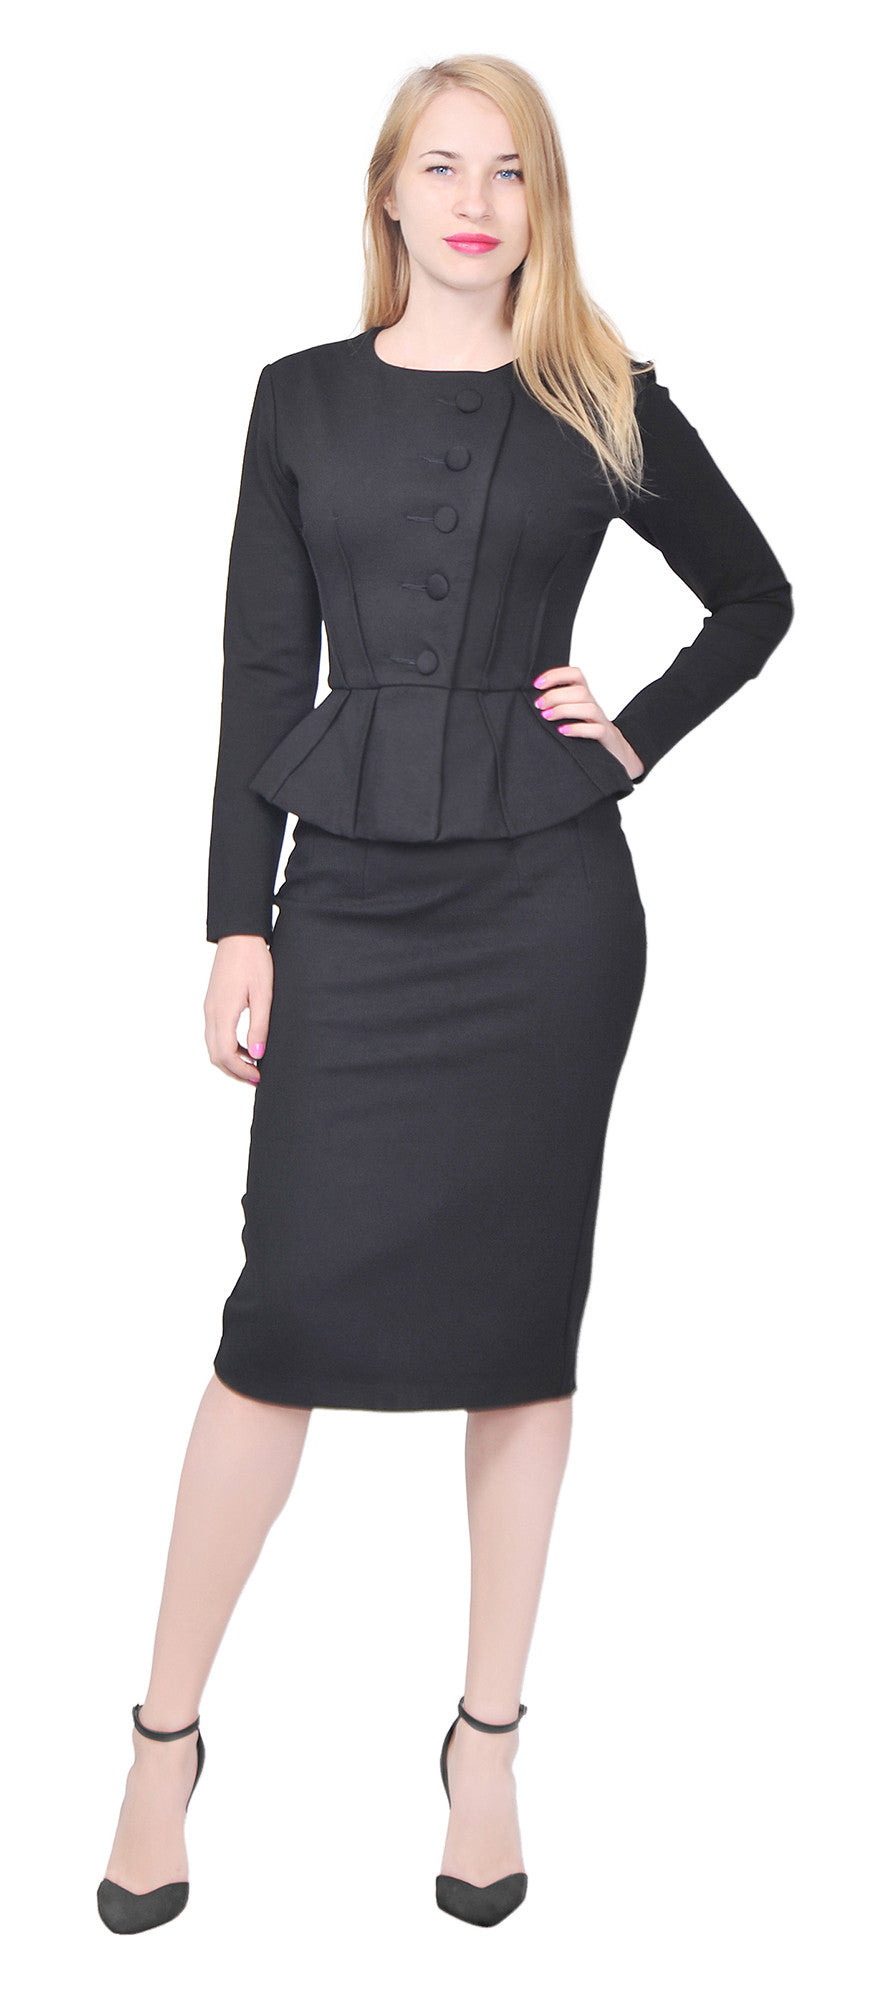 womens formal office business shirt jacket skirt suit set